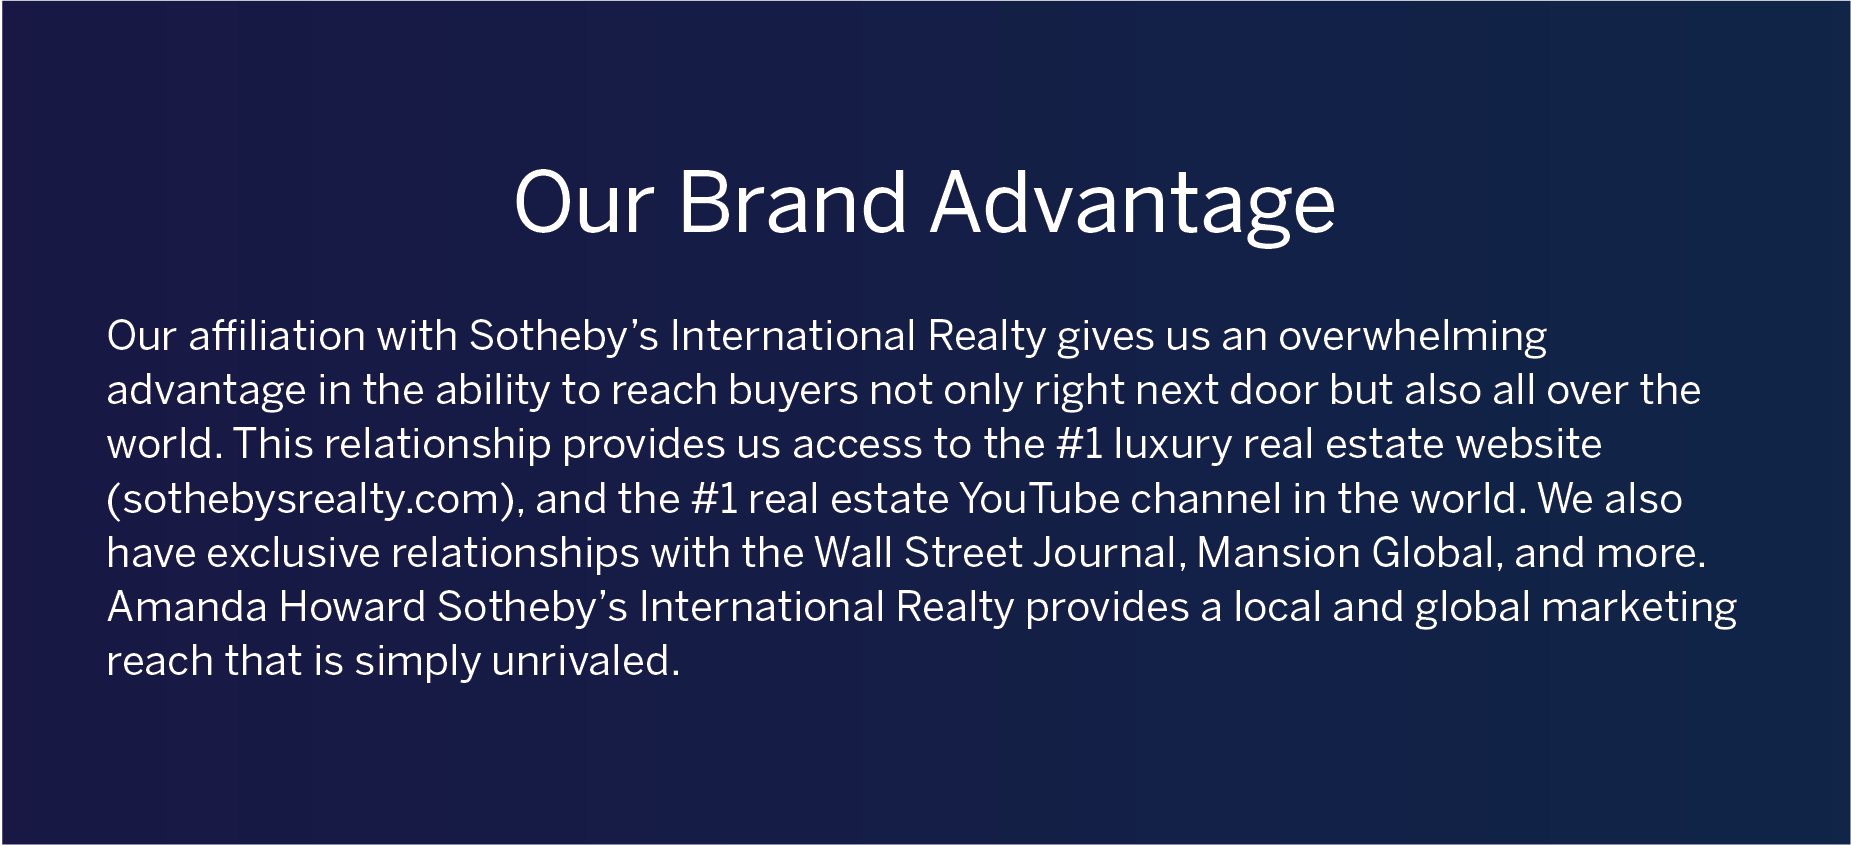 Our Brand Advantage